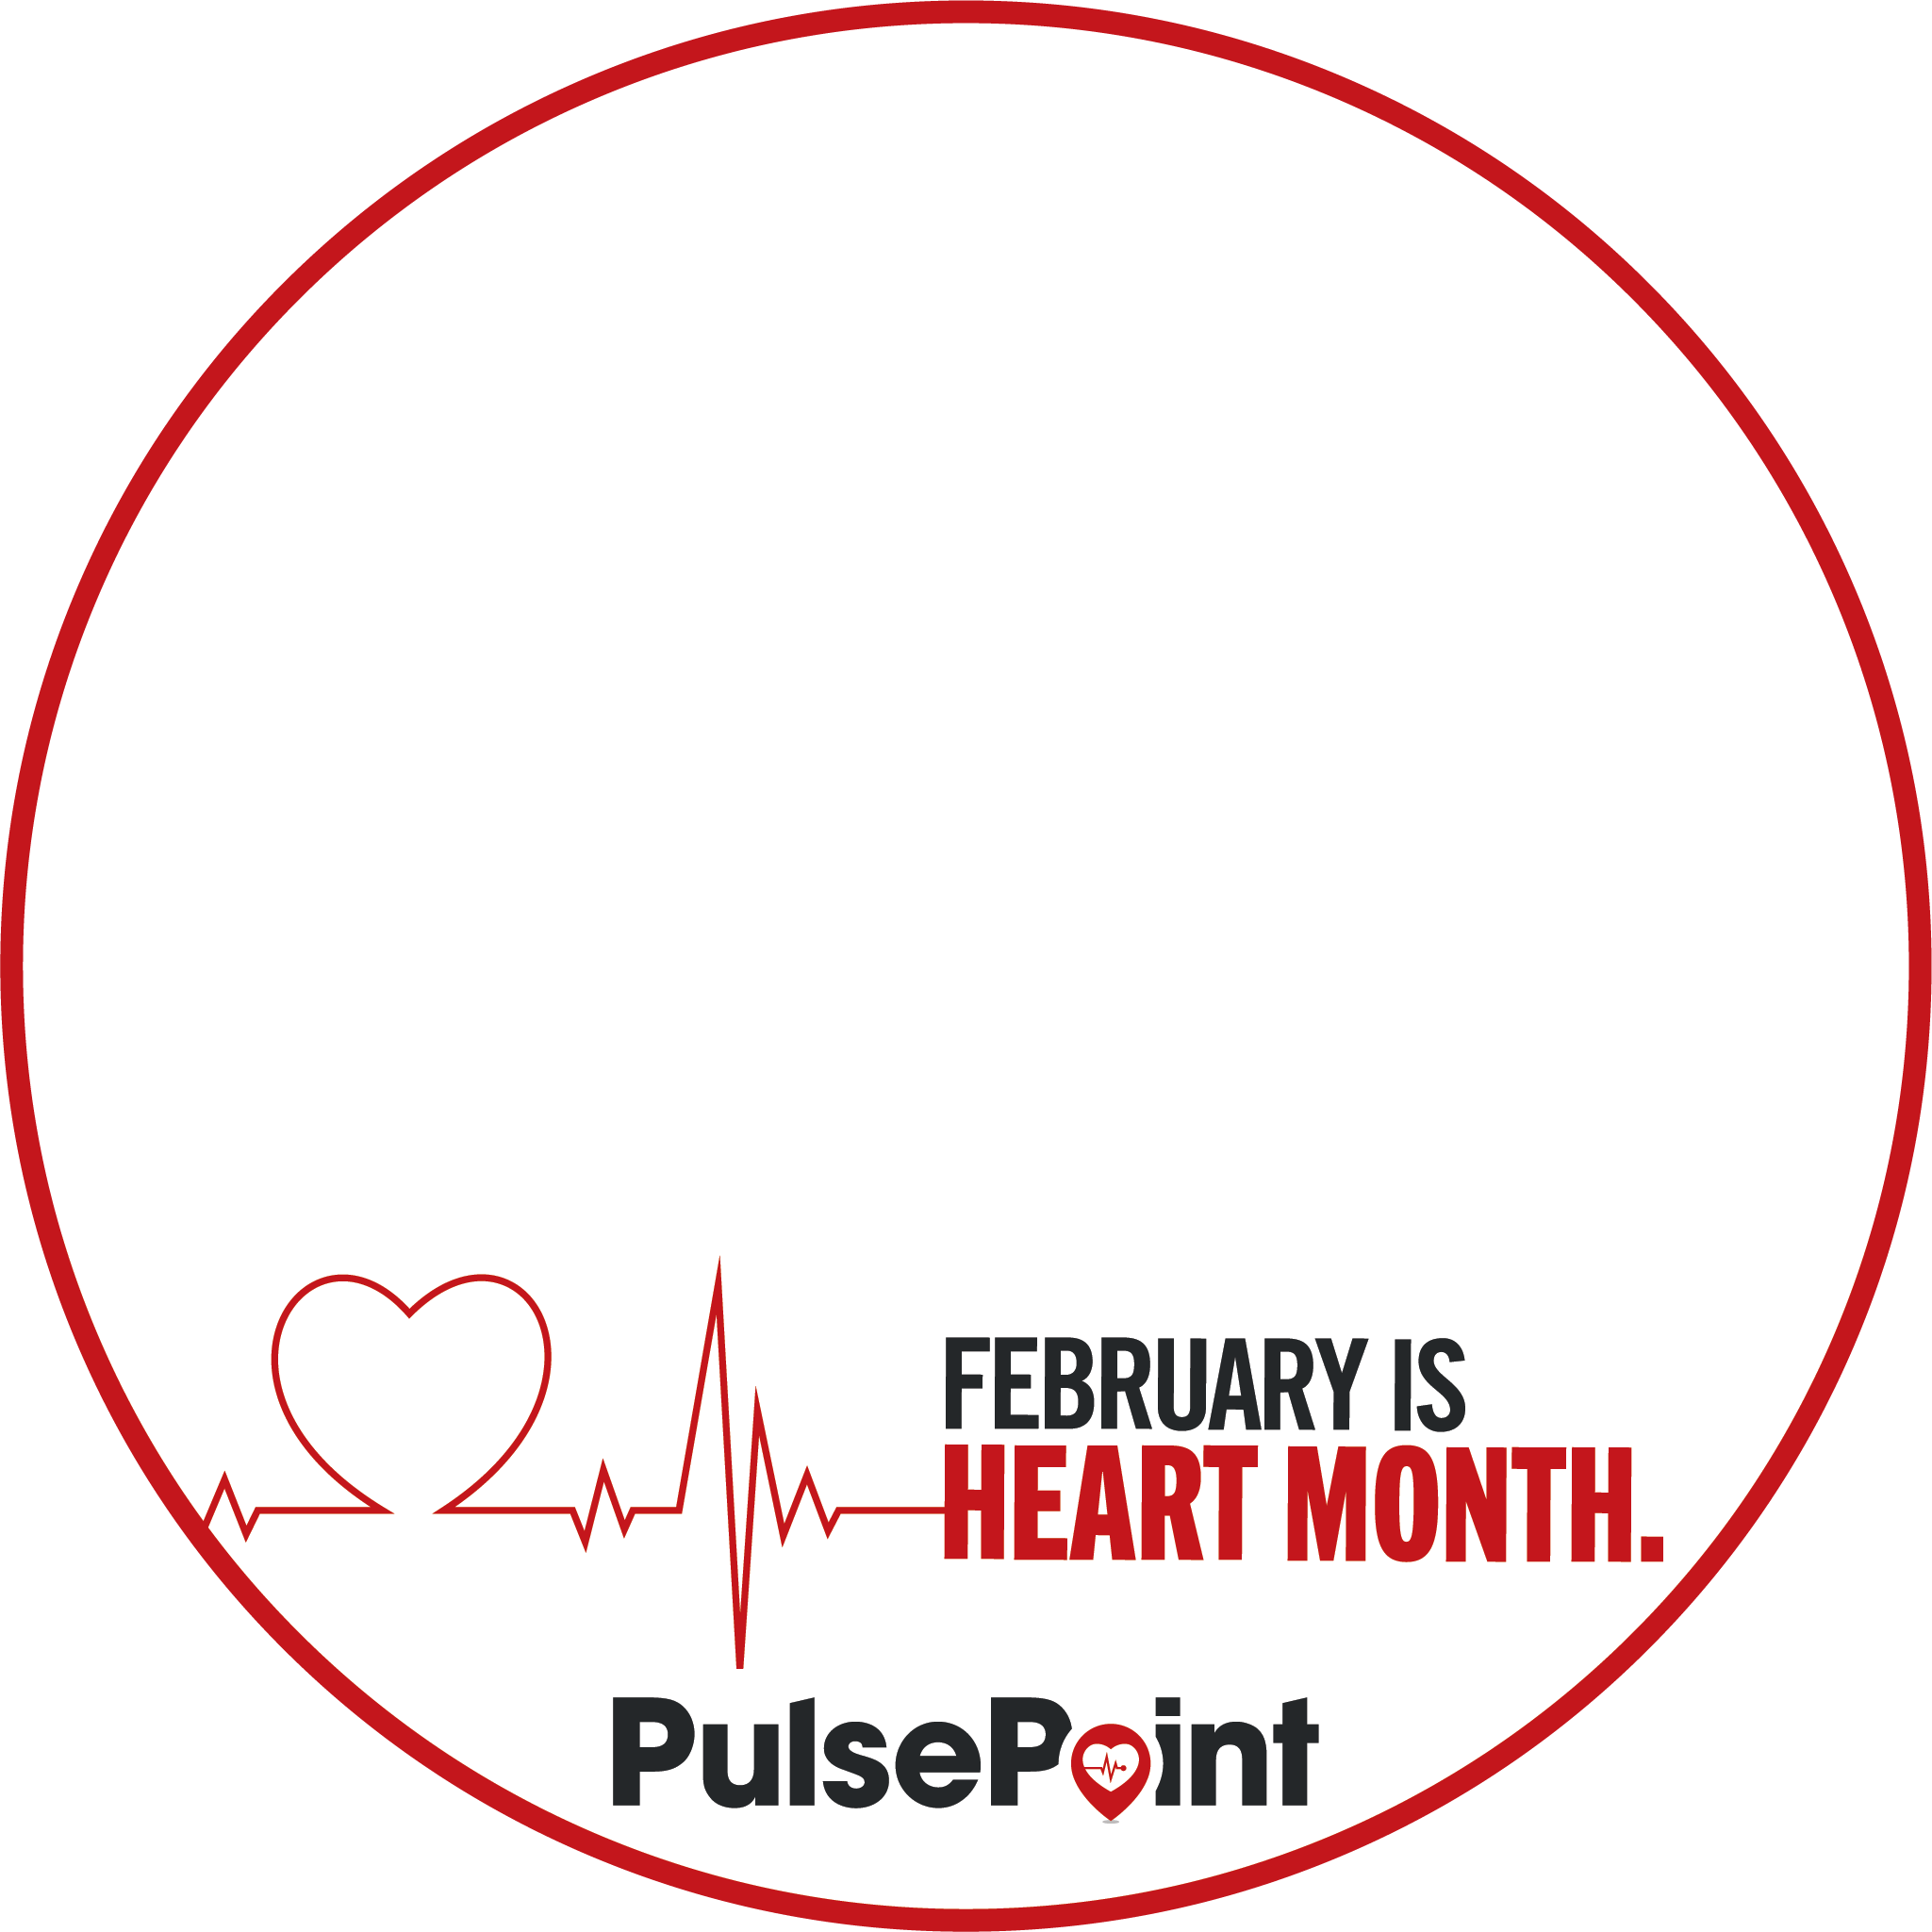 Image of PP 20 041 Heart Month Toolkit Facebook Frame 1200x1200 PP